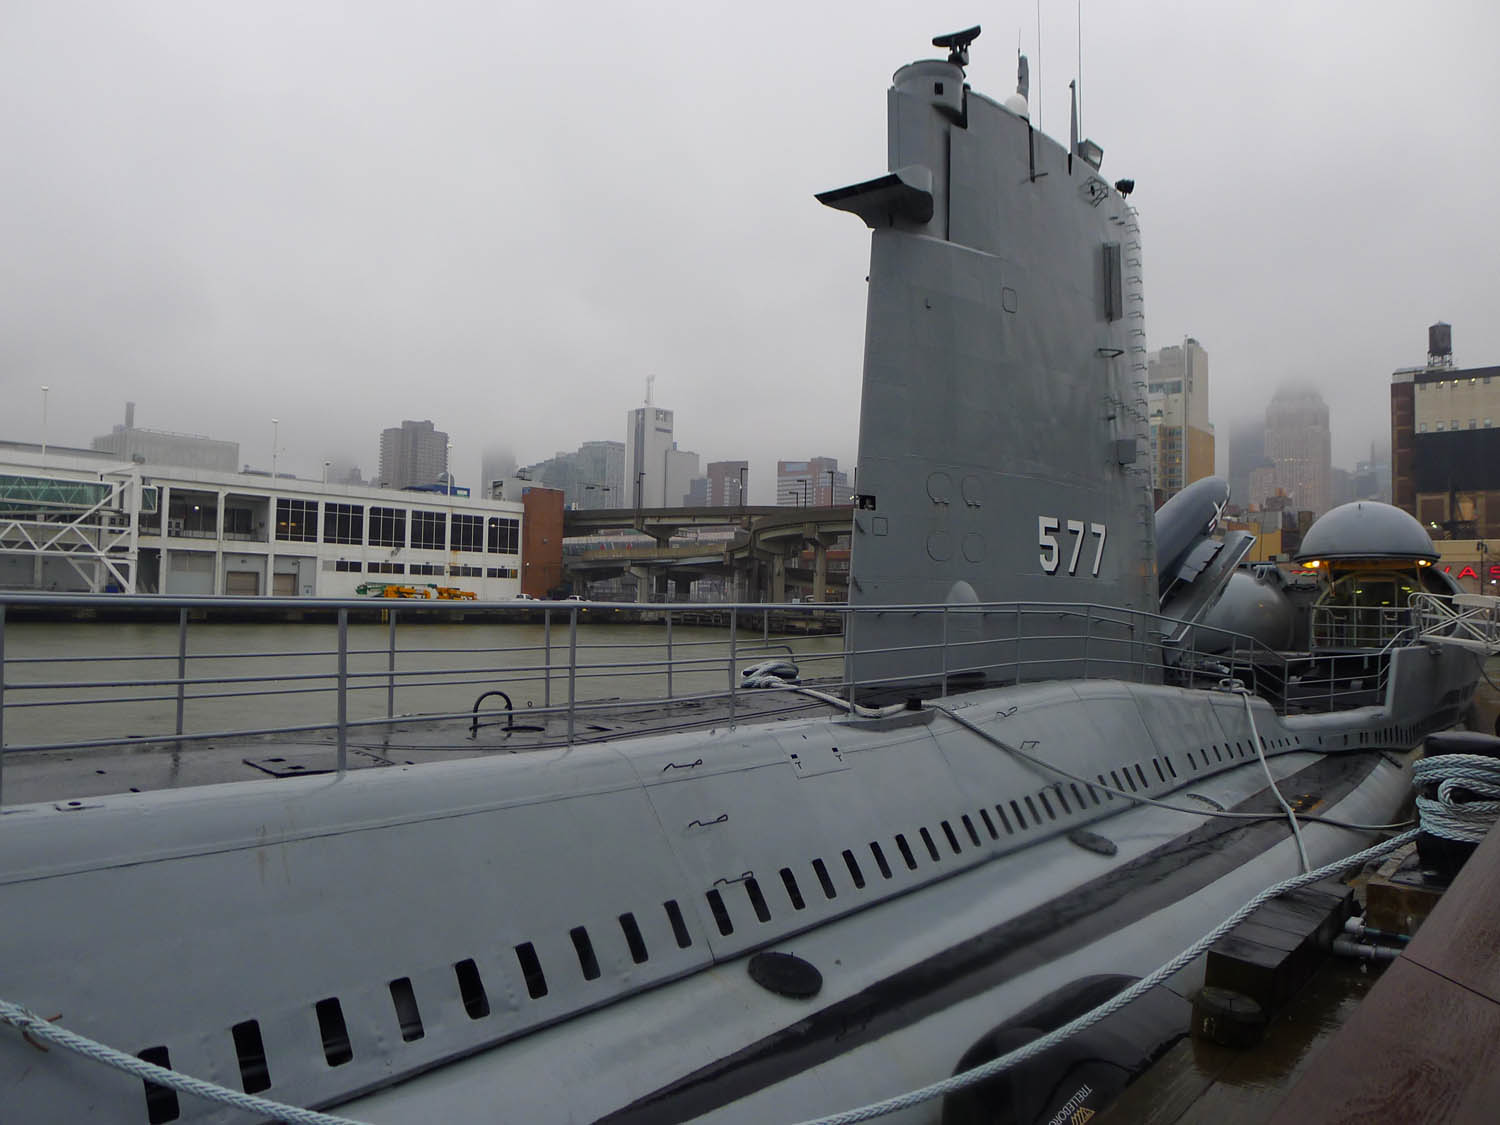 Submarine Growler